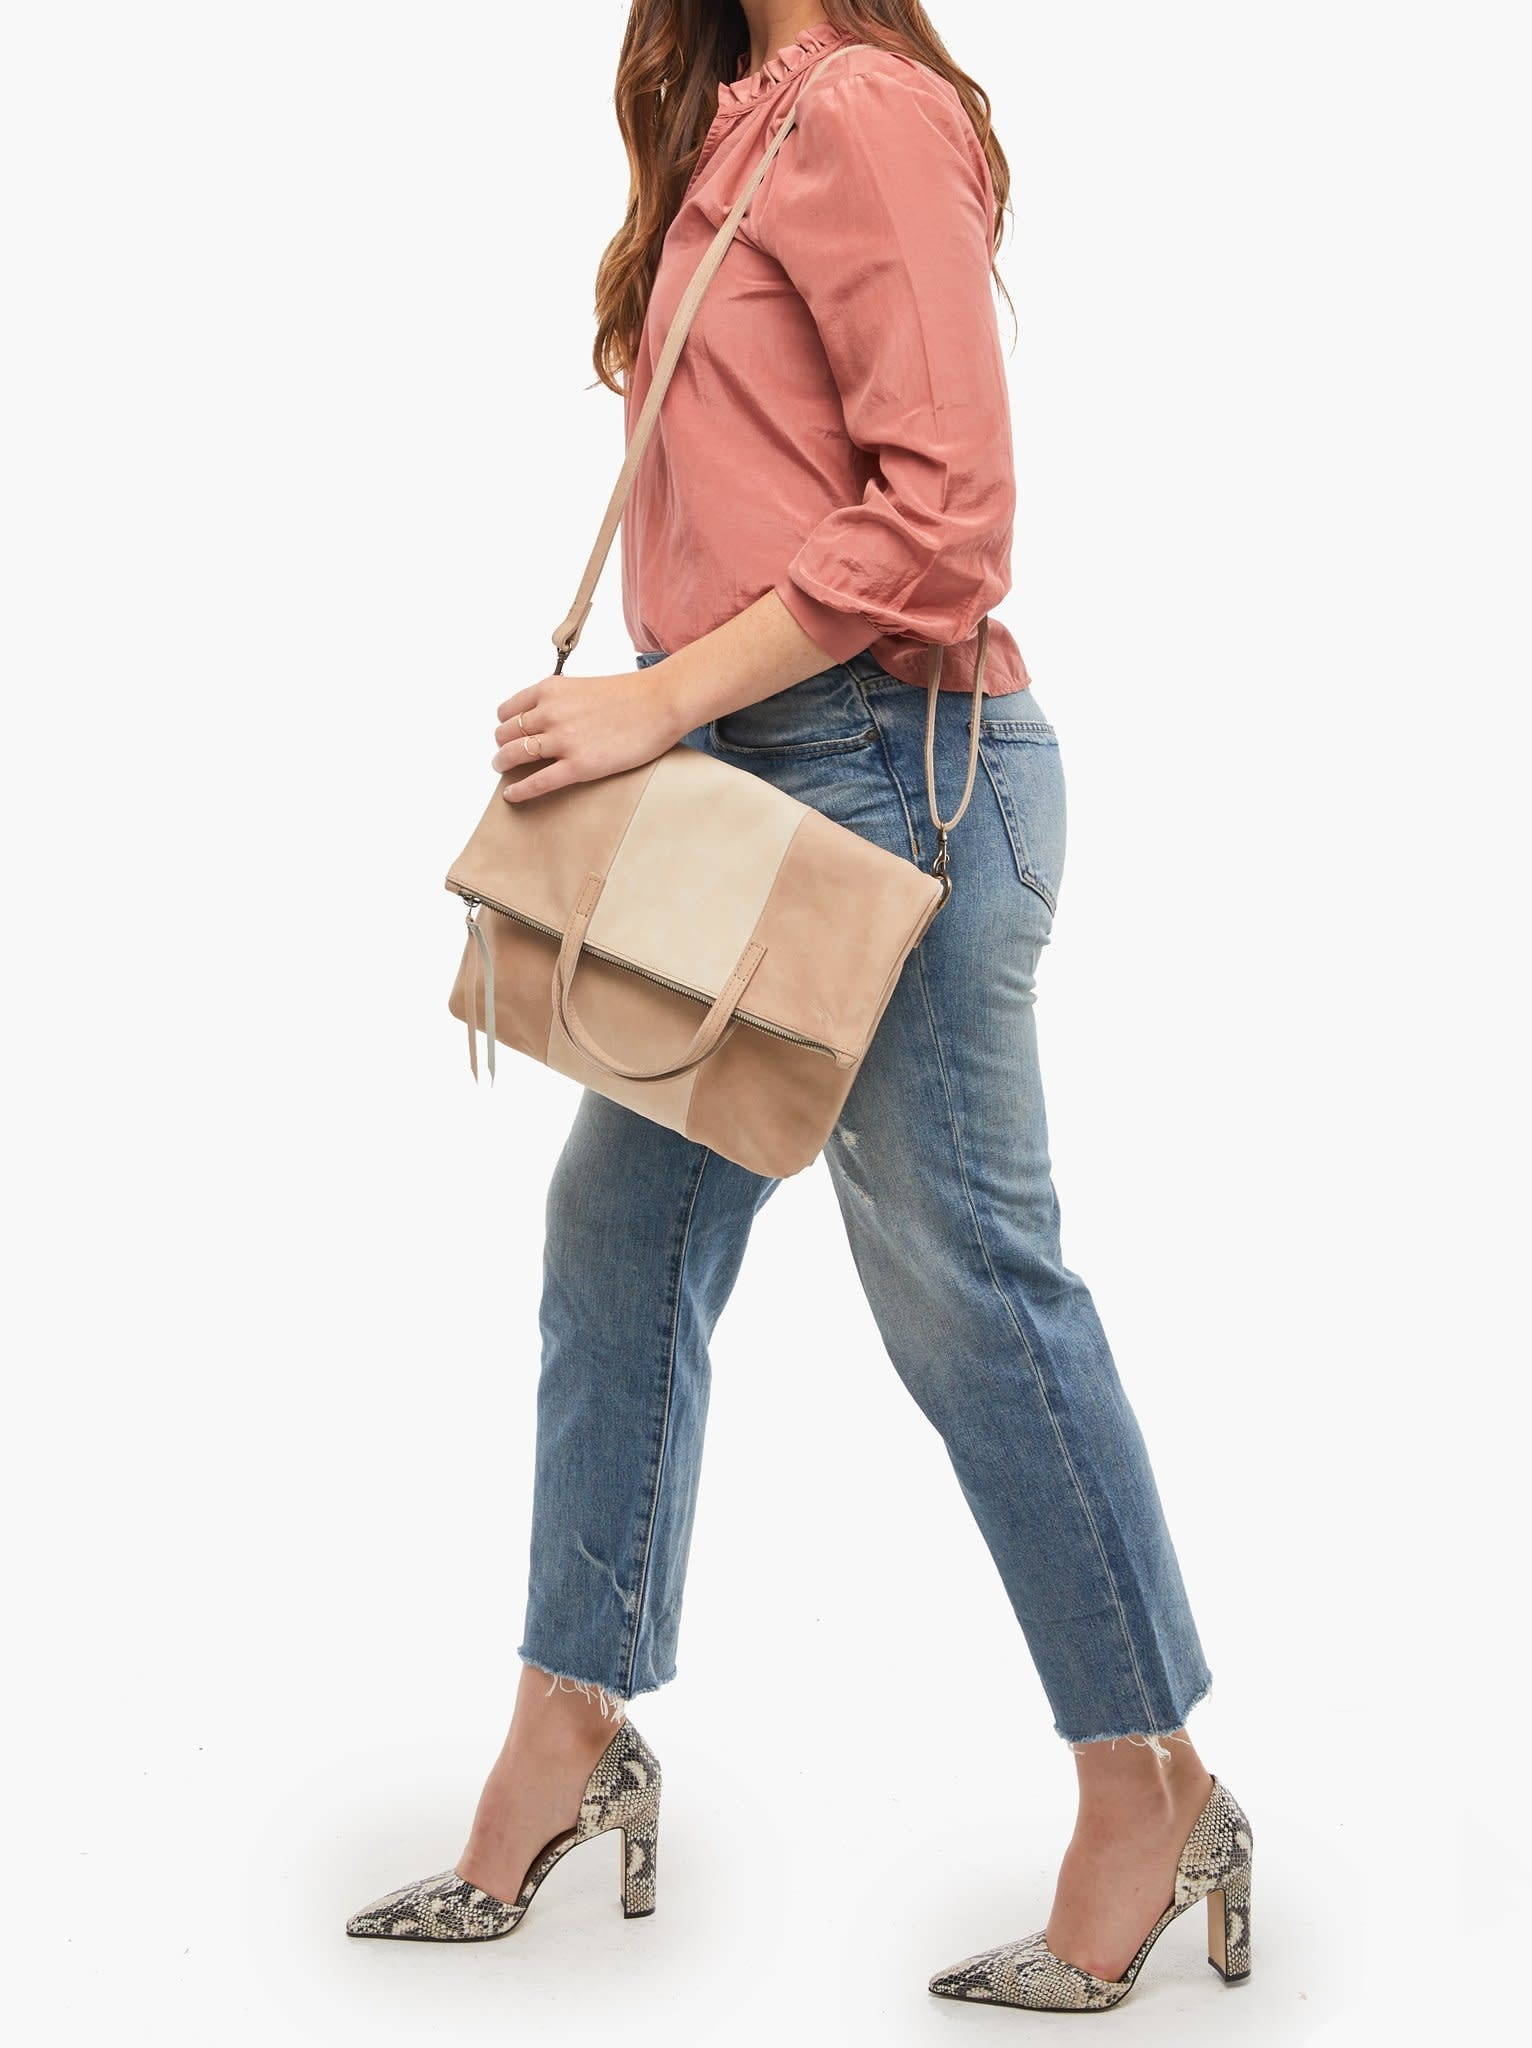 Fashionable Emnet Colorblock Foldover Tote